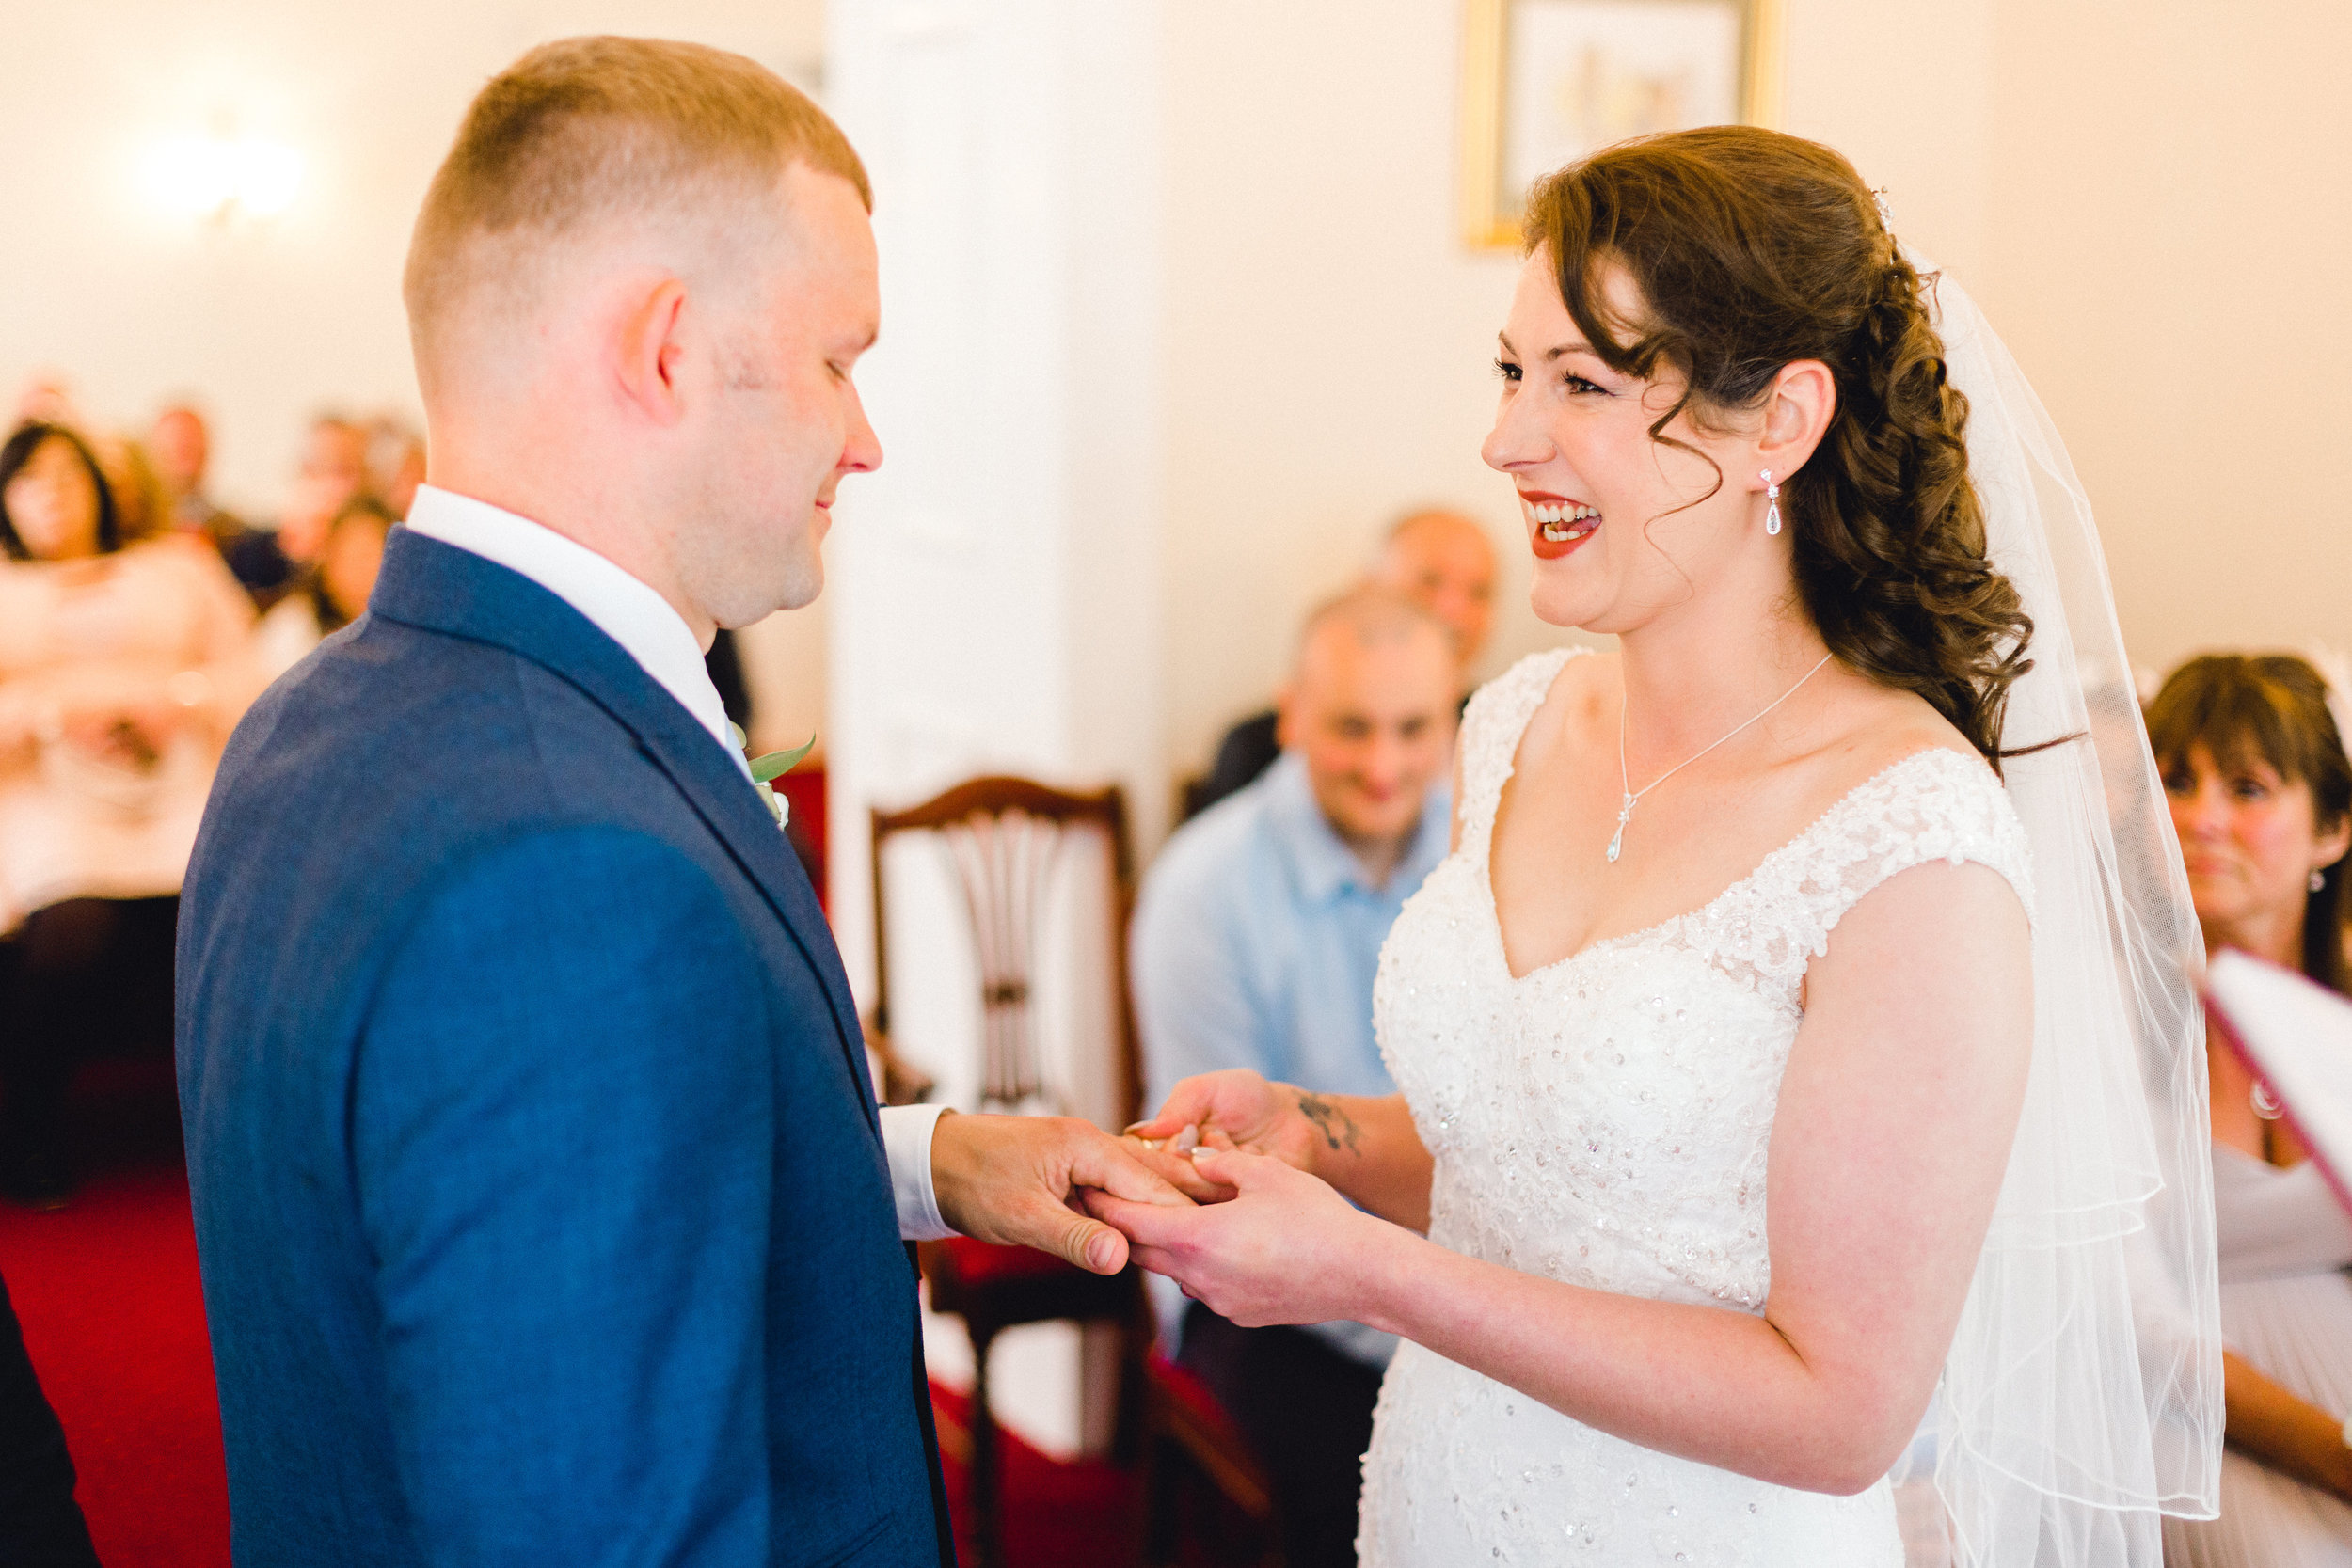 exchanging of rings during wedding ceremony at Llwynegrin Hall